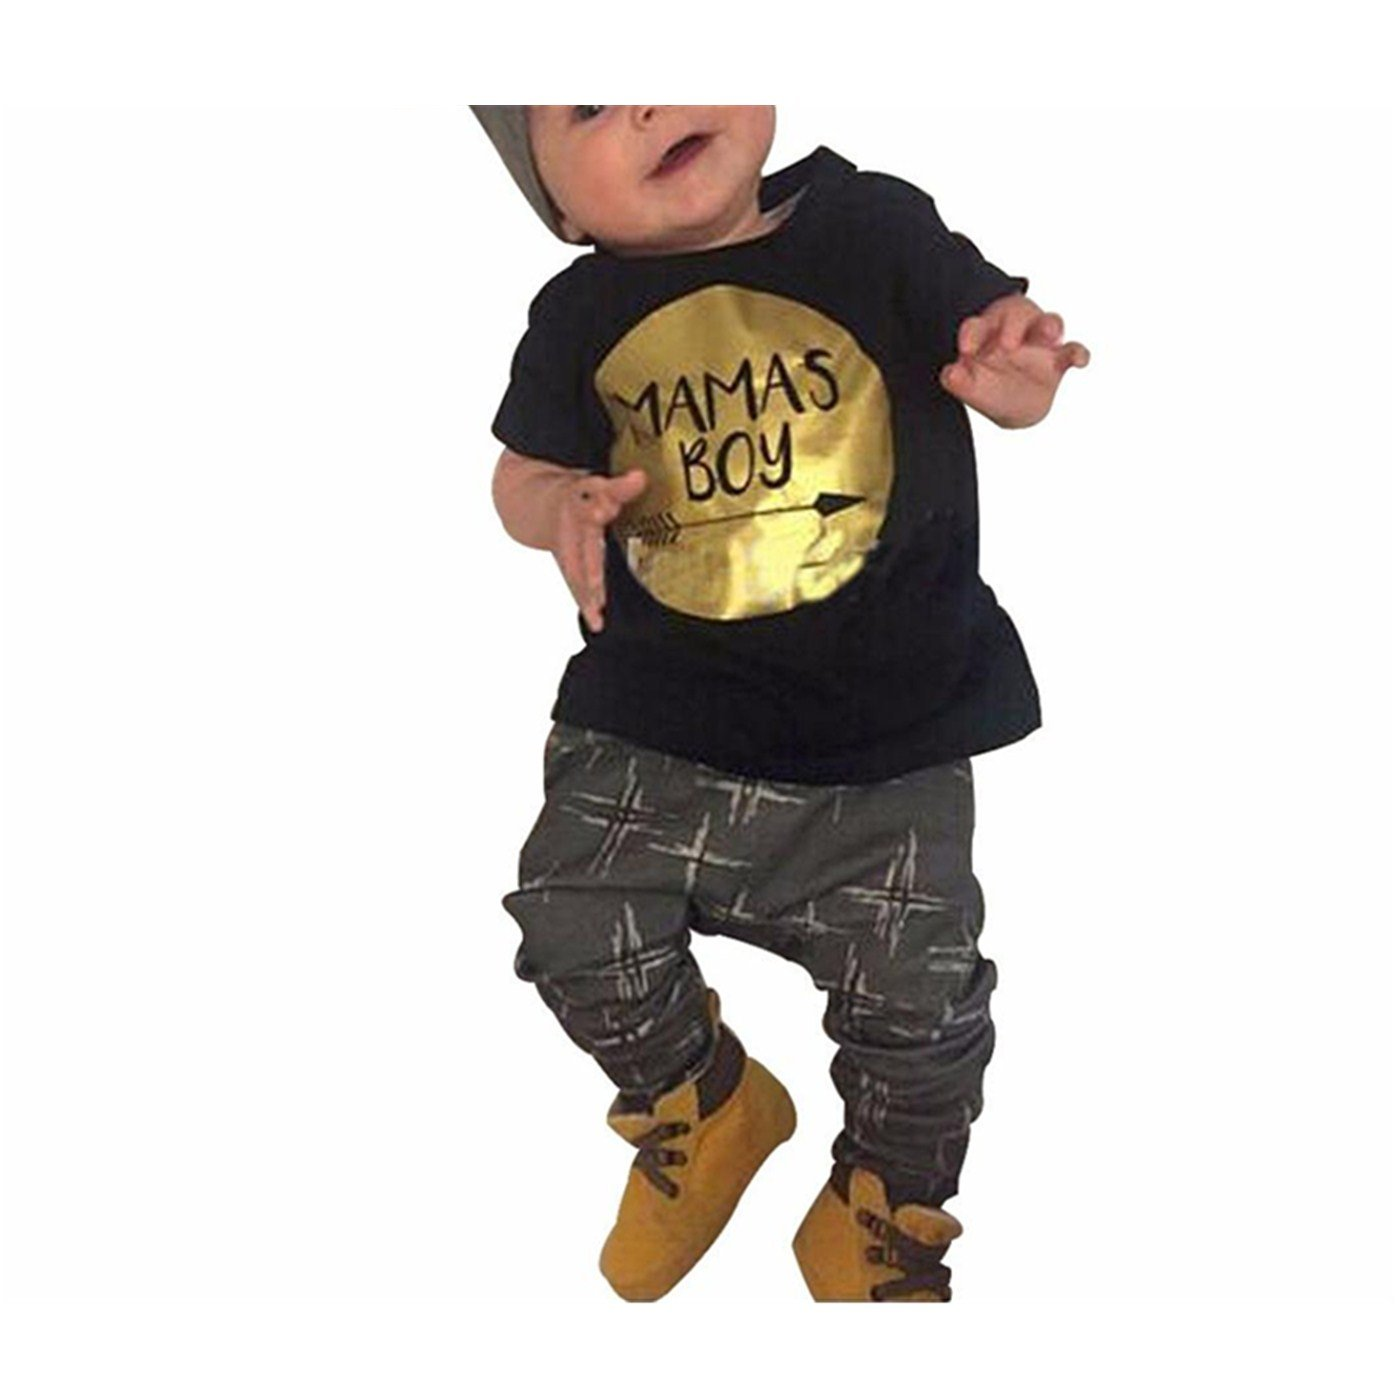 Clearance!!! Vovotrade 2pcs Toddler Boys Summer Letter Print Short Sleeve Top T Shirt +Long Trousers Outfits Set (90 (12-18months), Black) Vovotrade-Baby Clothes